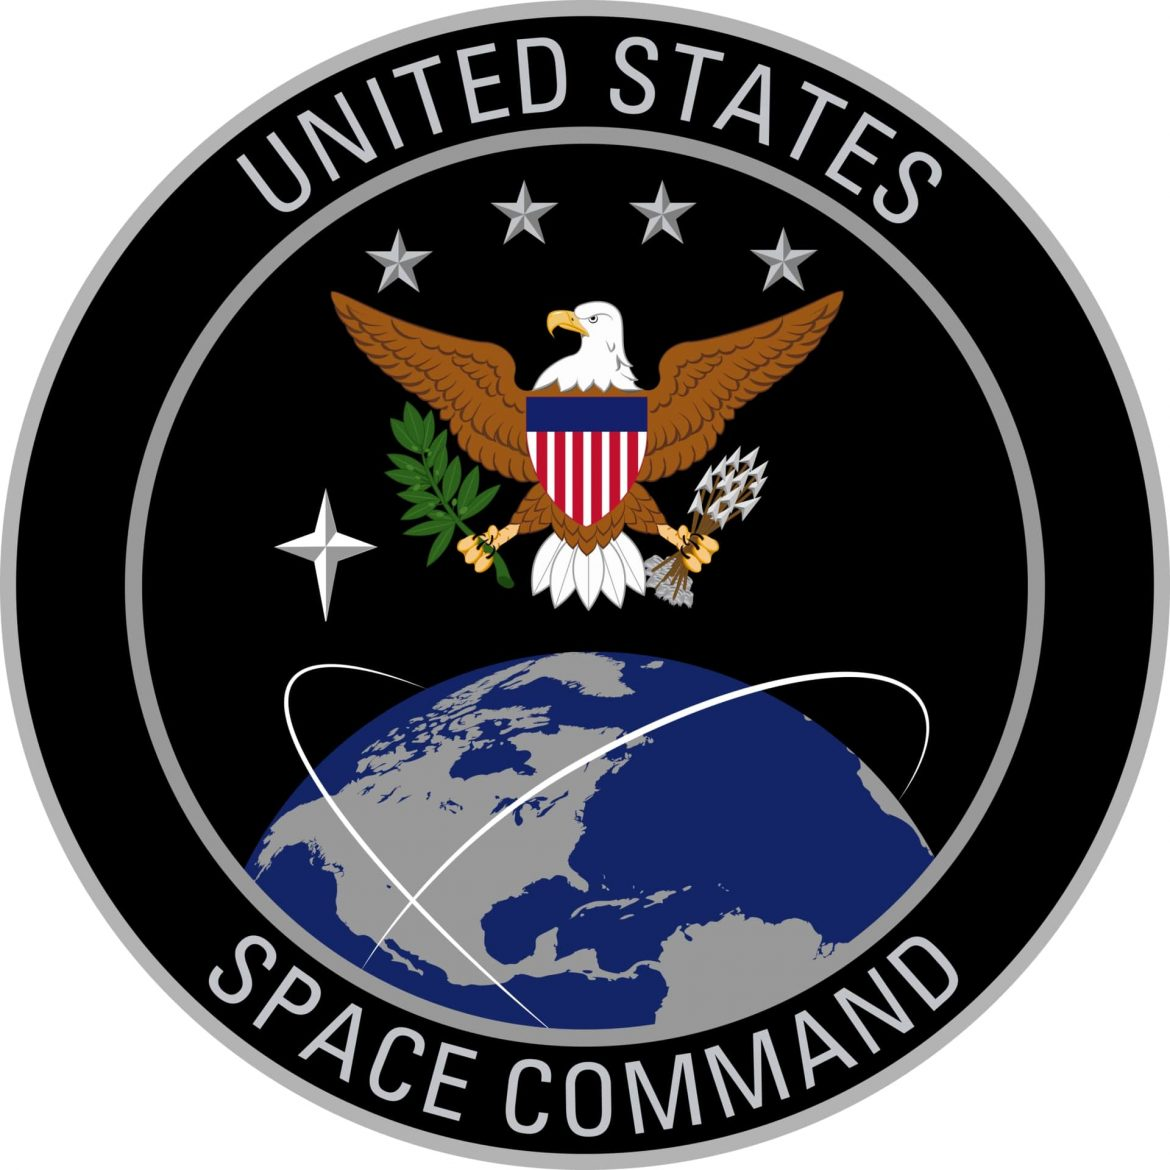 Pentagon Inspector General Investigations on the US Space Command move to Alabama